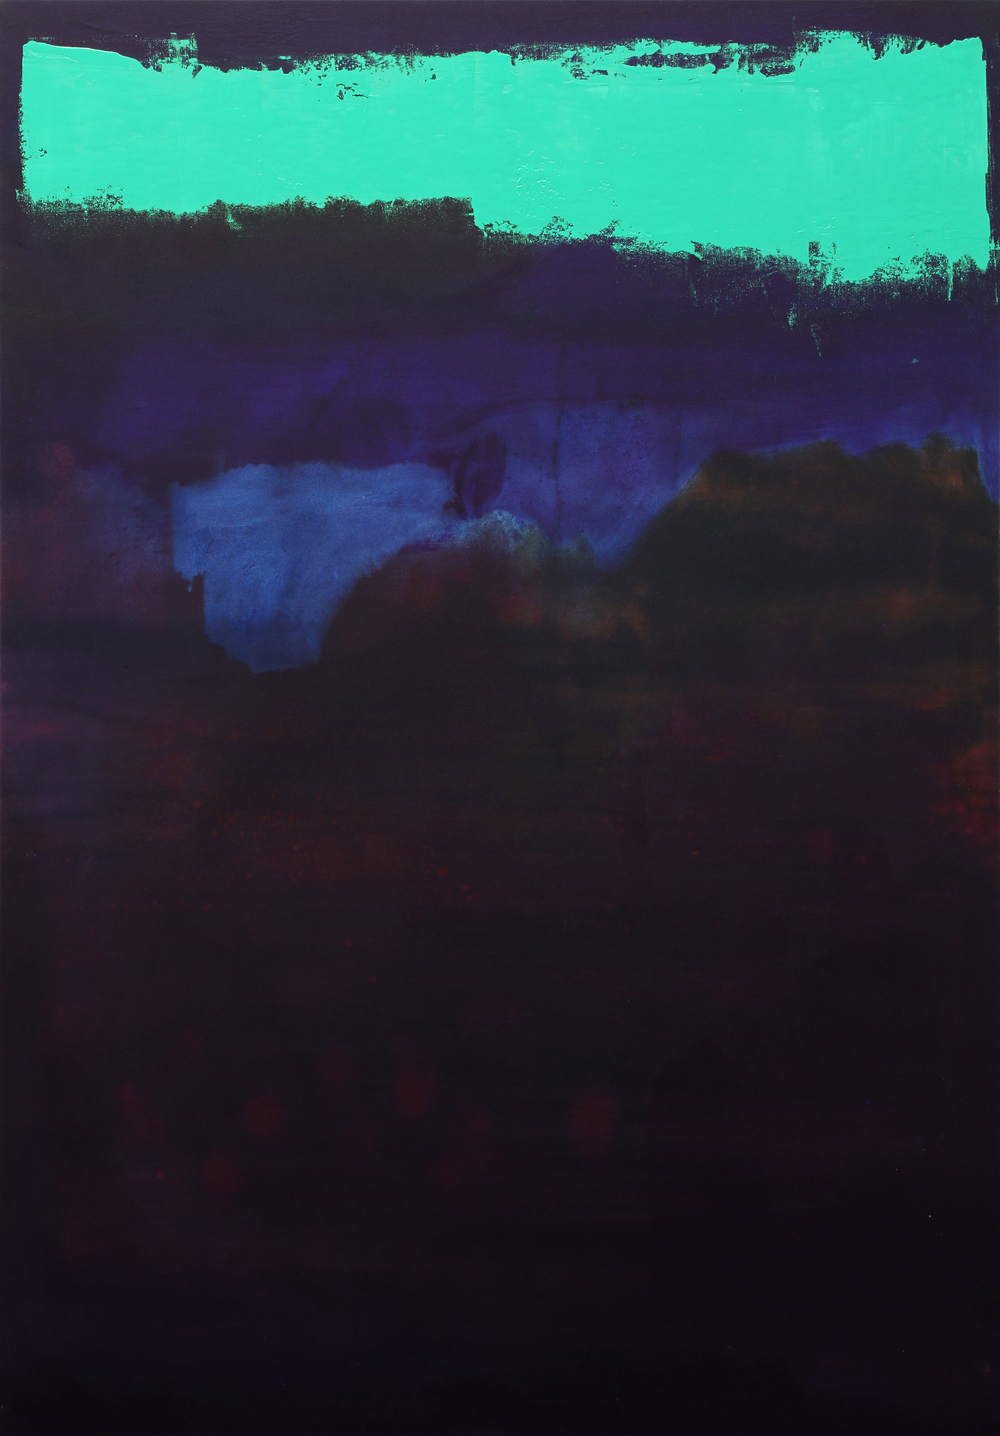 green smear, 2013, oil on canvas, 54 x 37.5 in